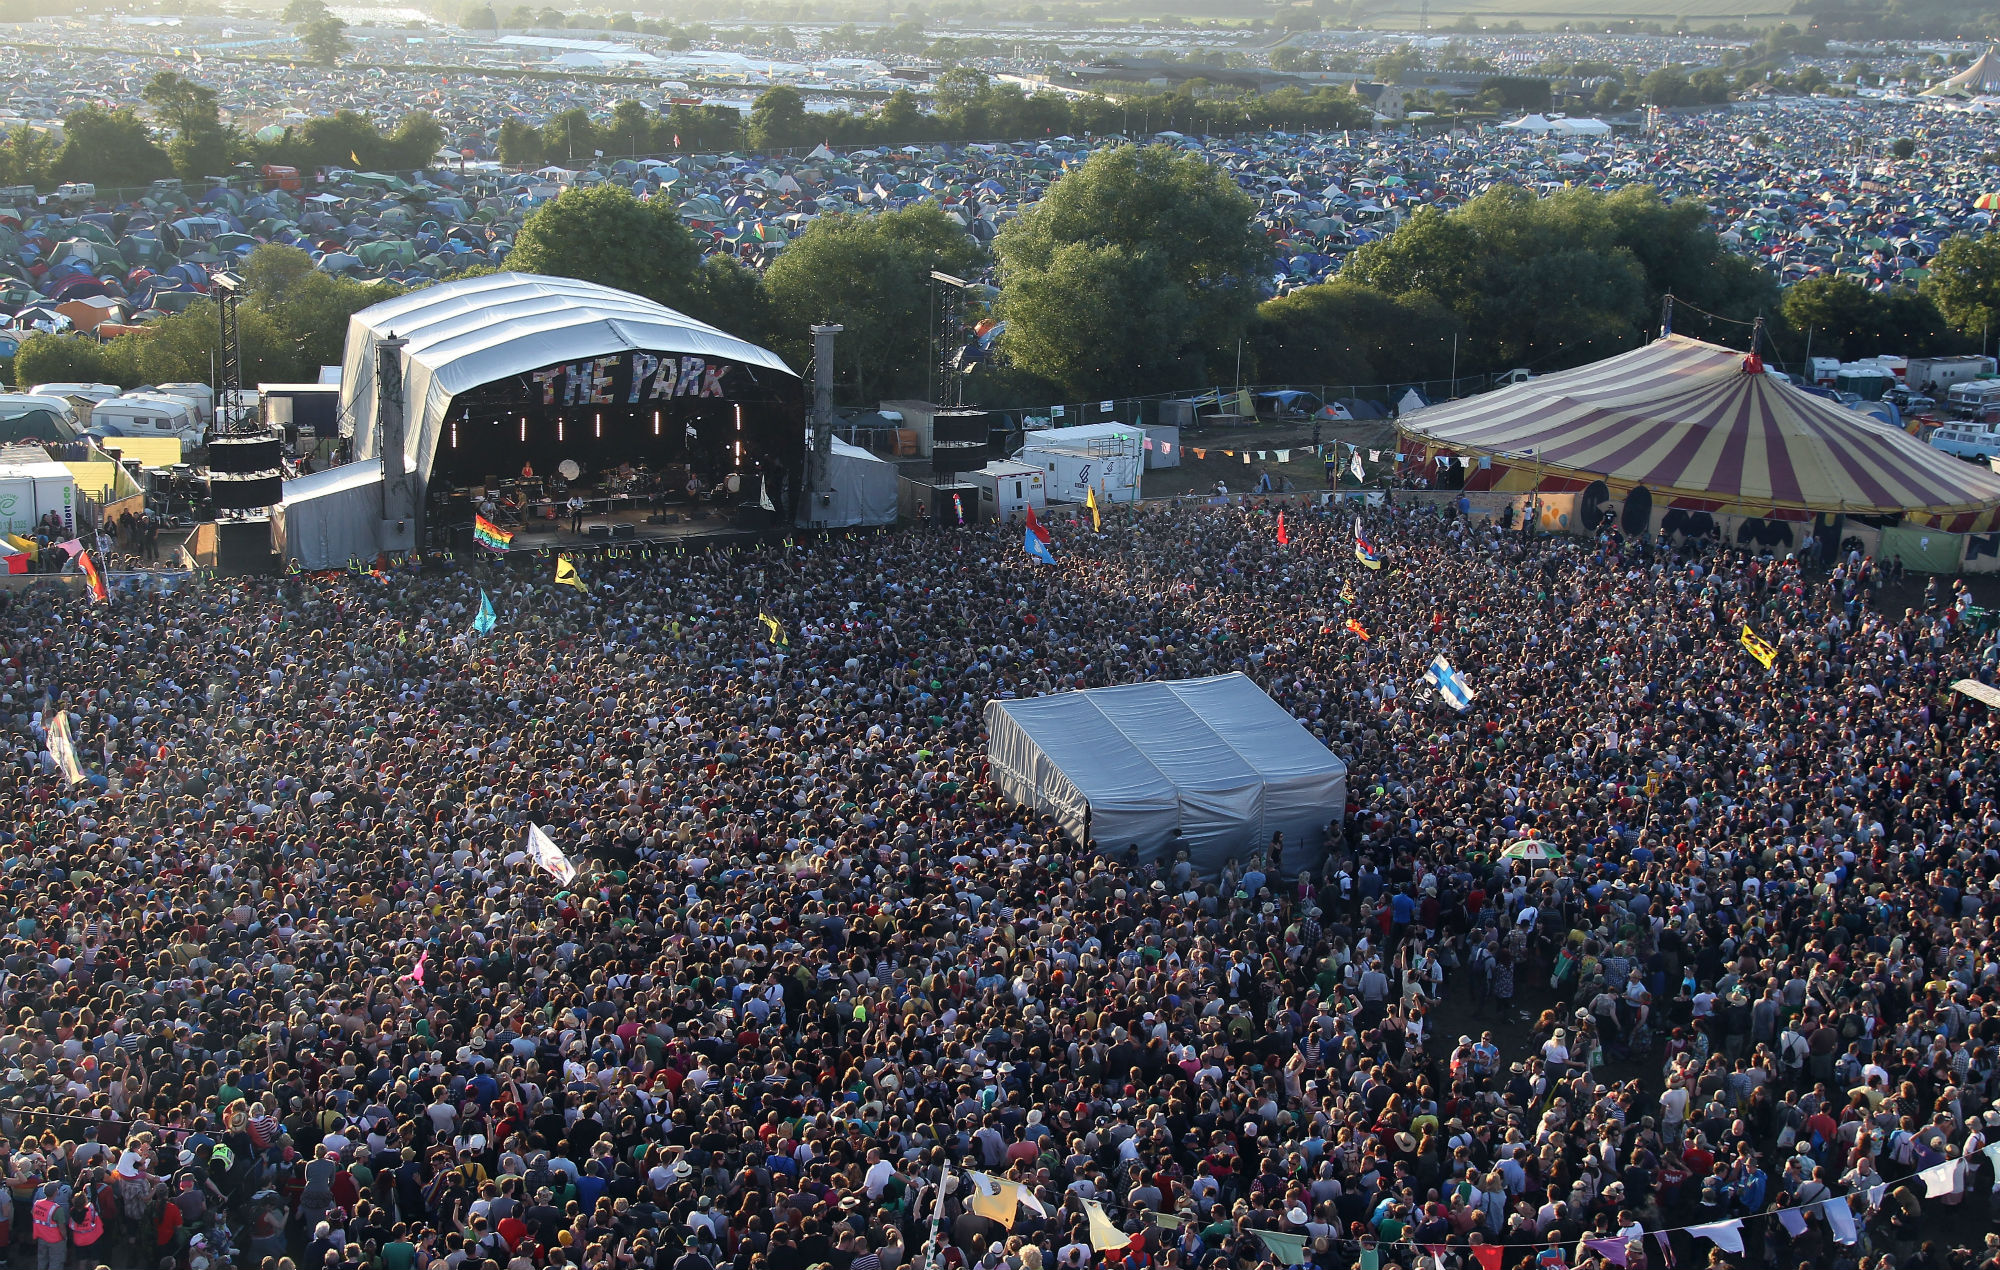 The crowd at the Park Stage for Pulp's secret Glastonbury set, 2011